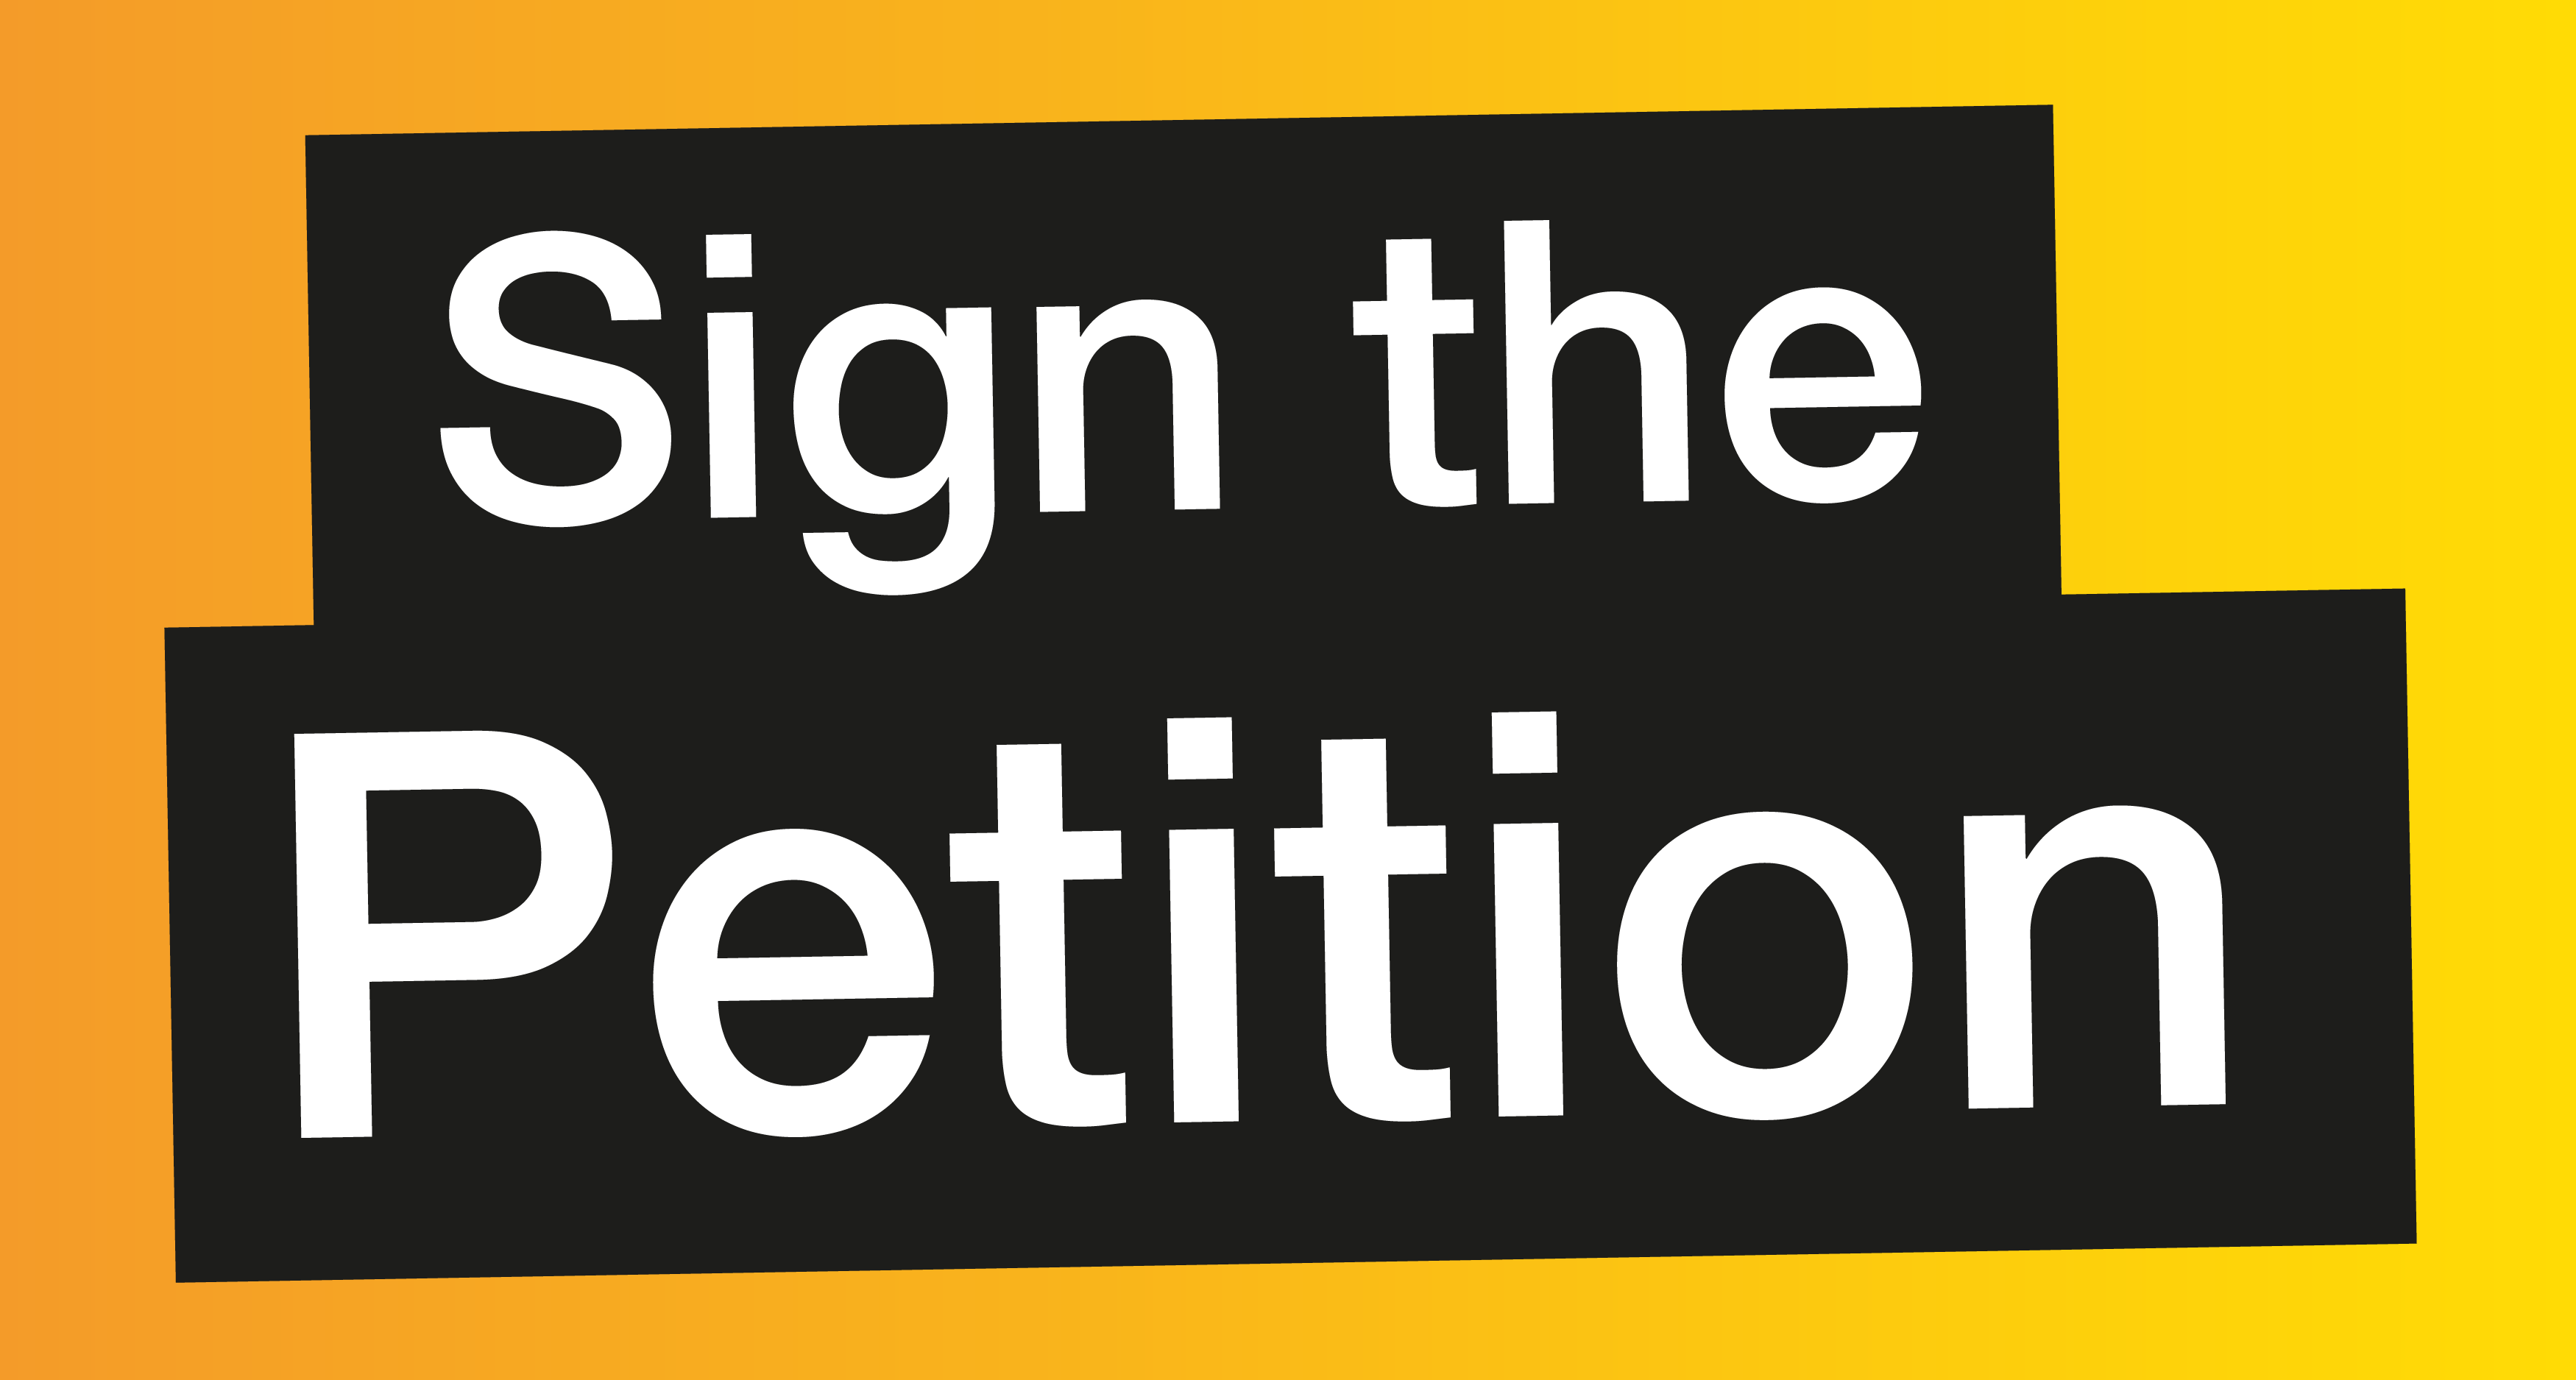 Save Our St Helier Petition